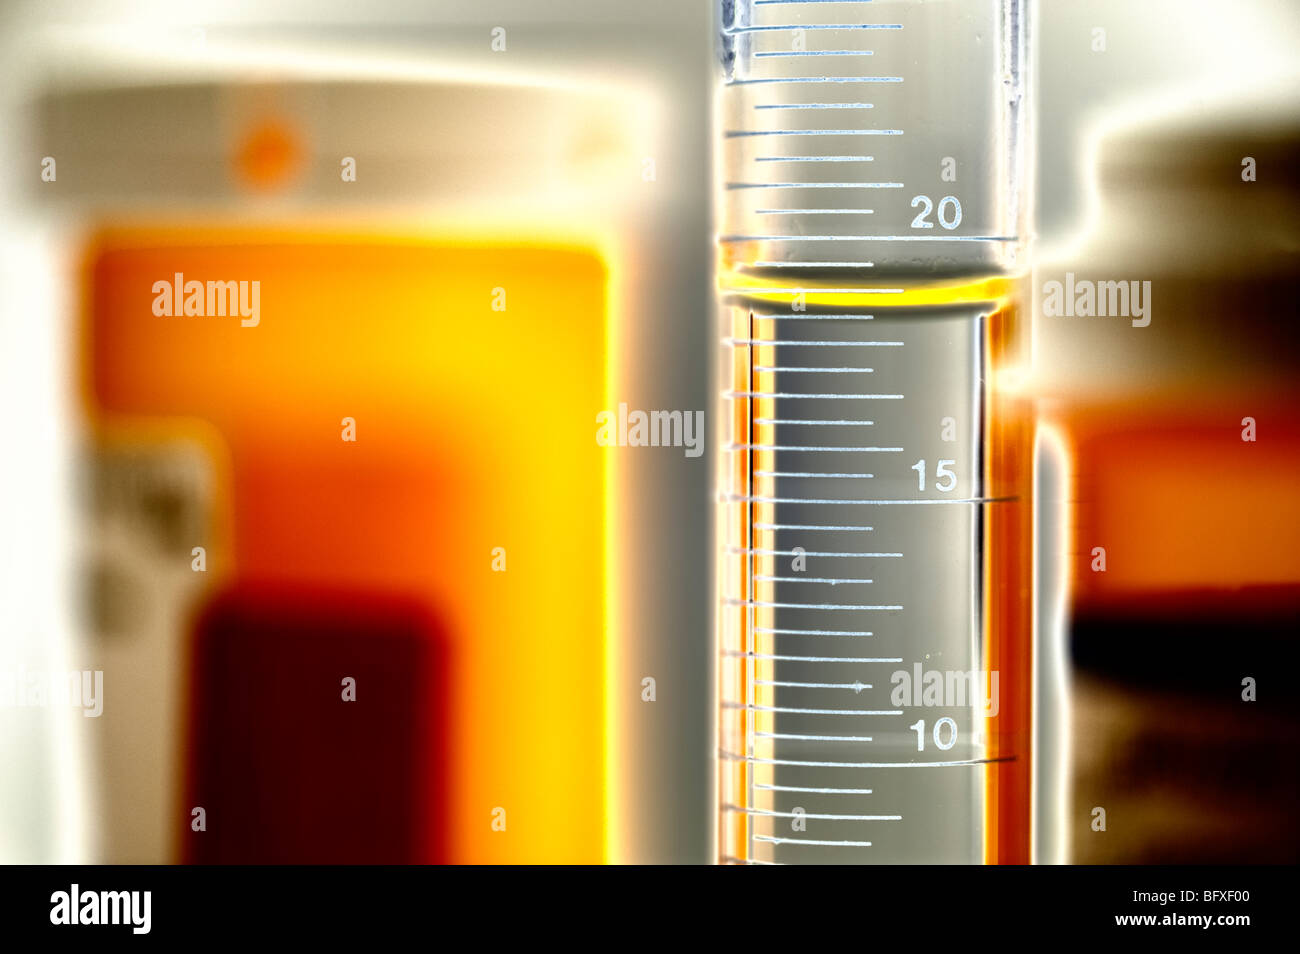 assortment of lab bottles and beakers - Stock Image